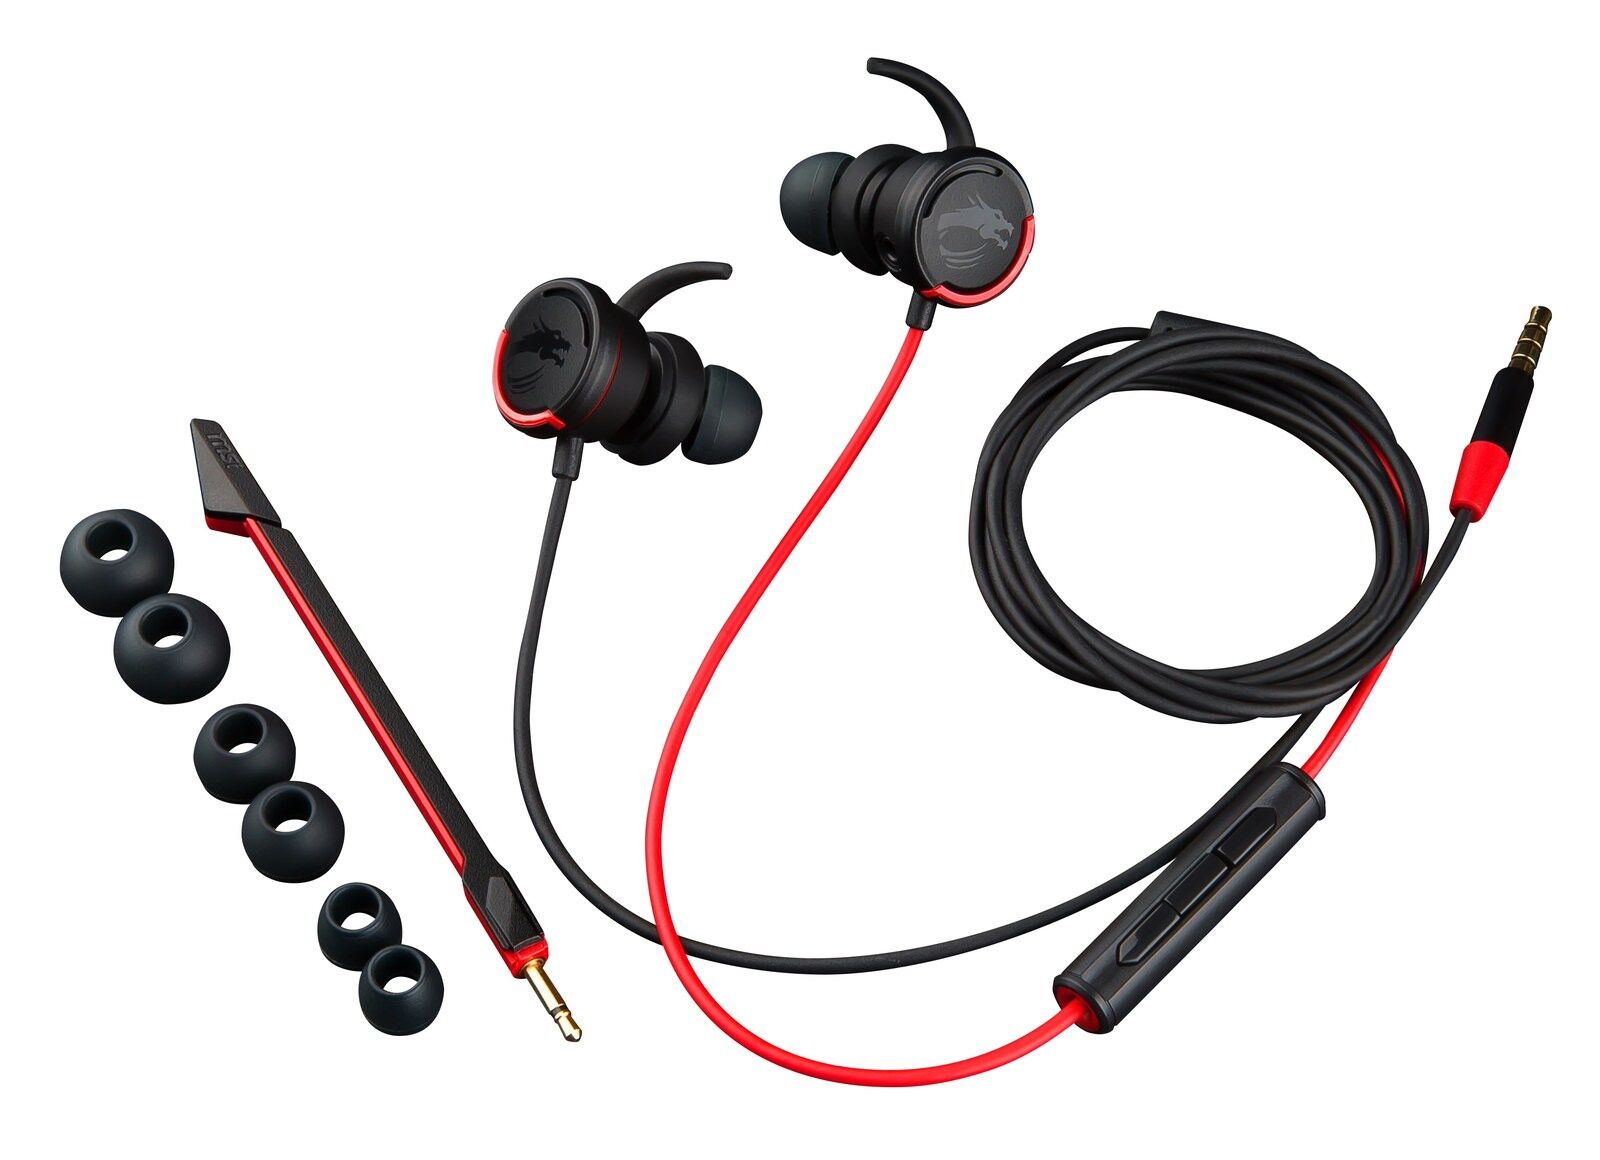 Msi Immerse Gh10 In Ear Gaming Headset With Detachable